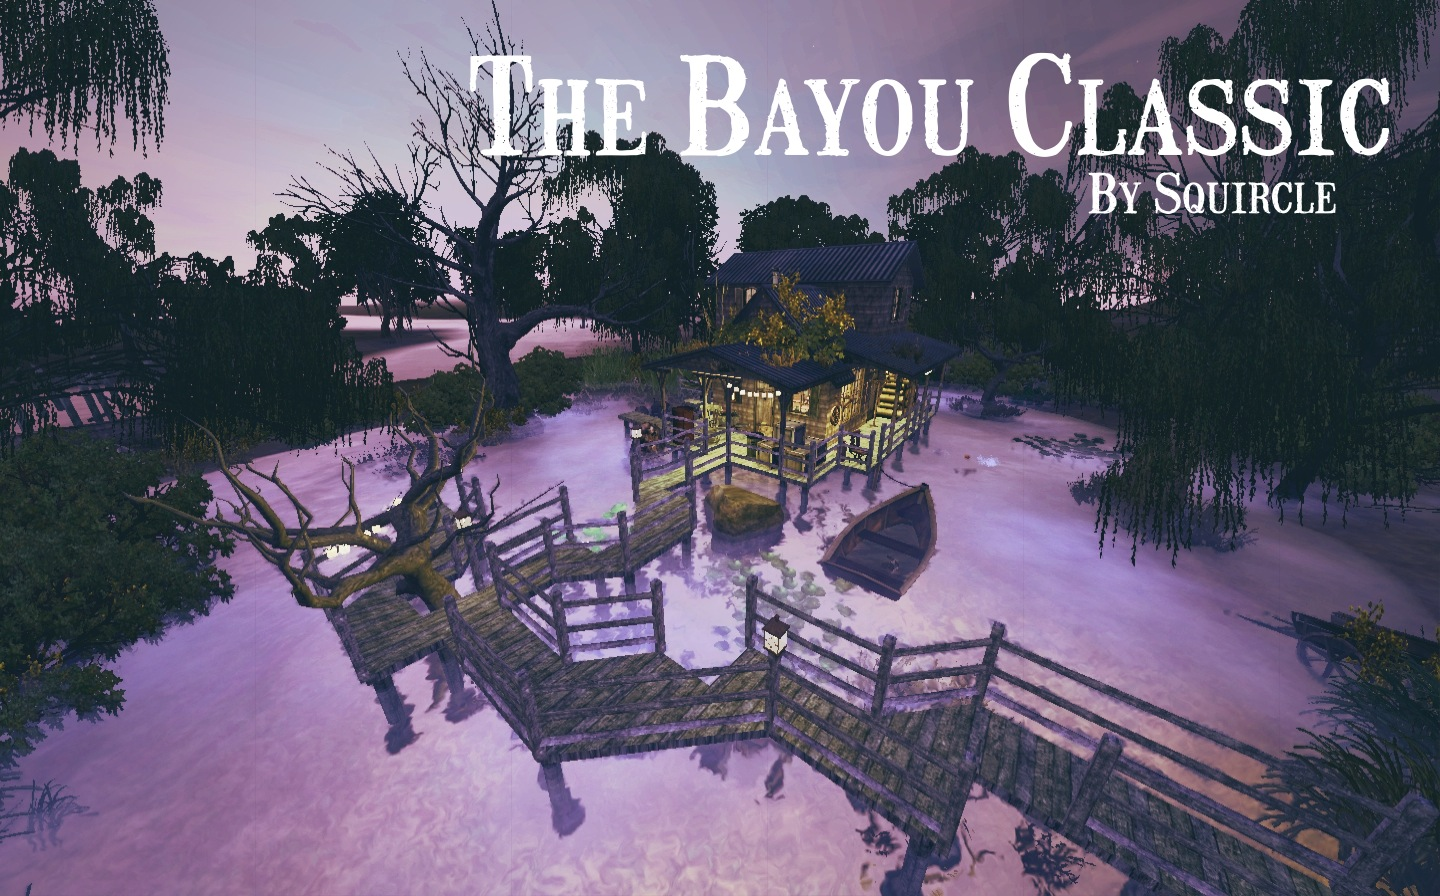 The Bayou Classic by Squircle